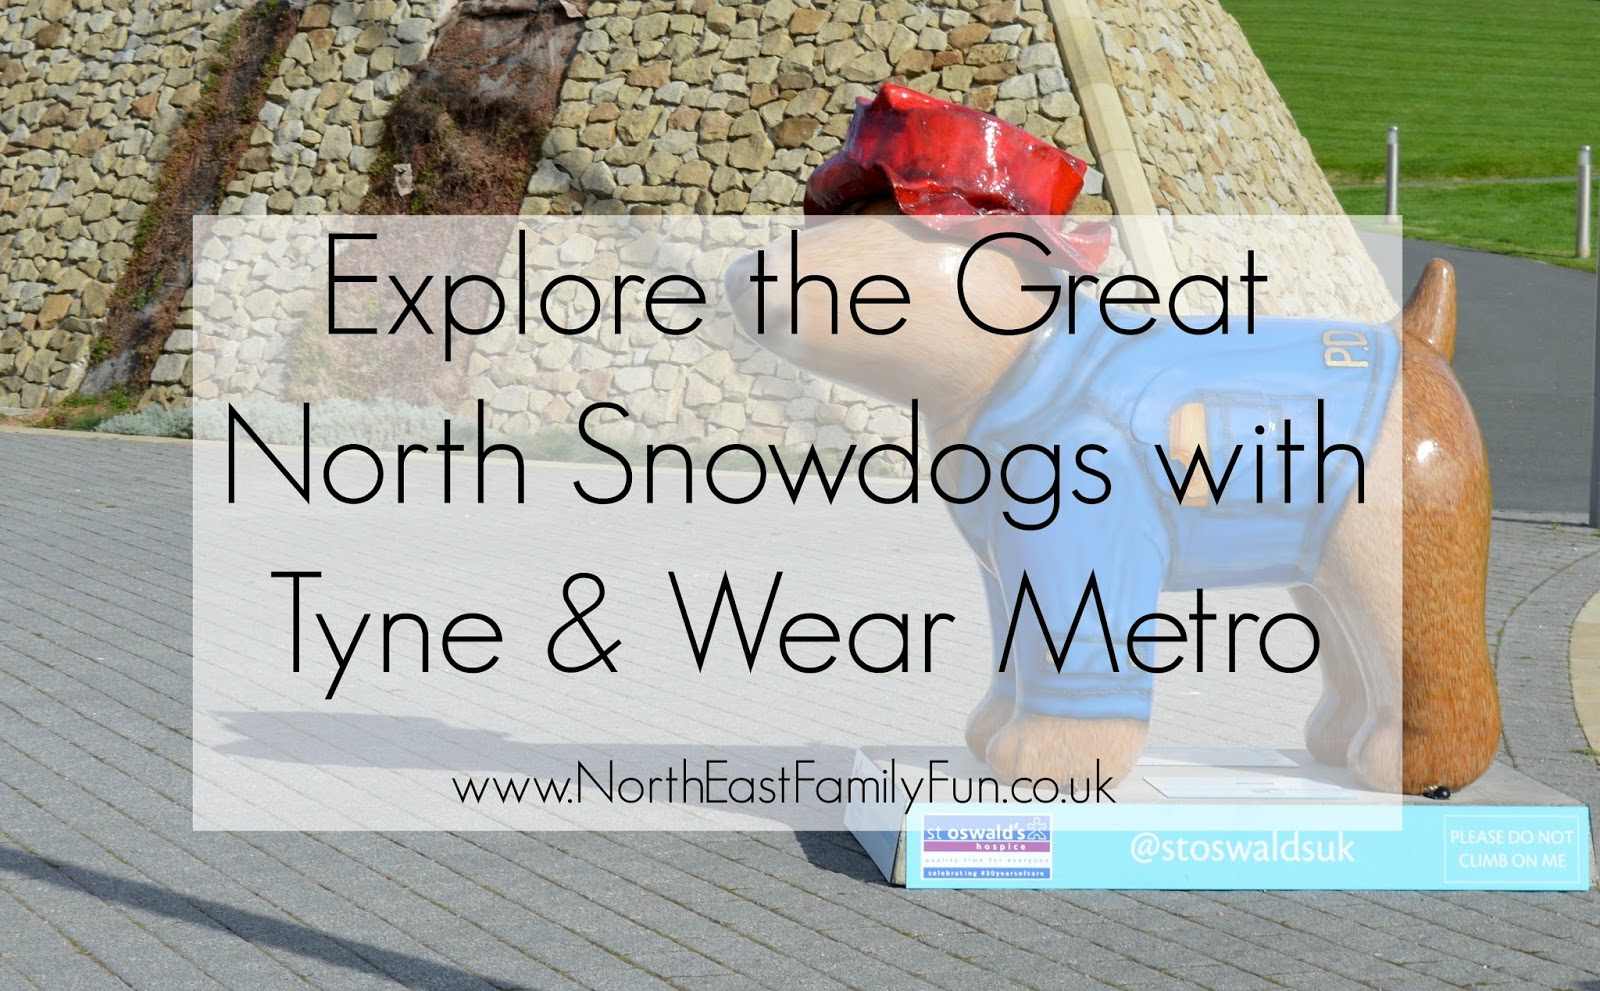 Explore the Great North Snowdogs with Tyne & Wear Metro